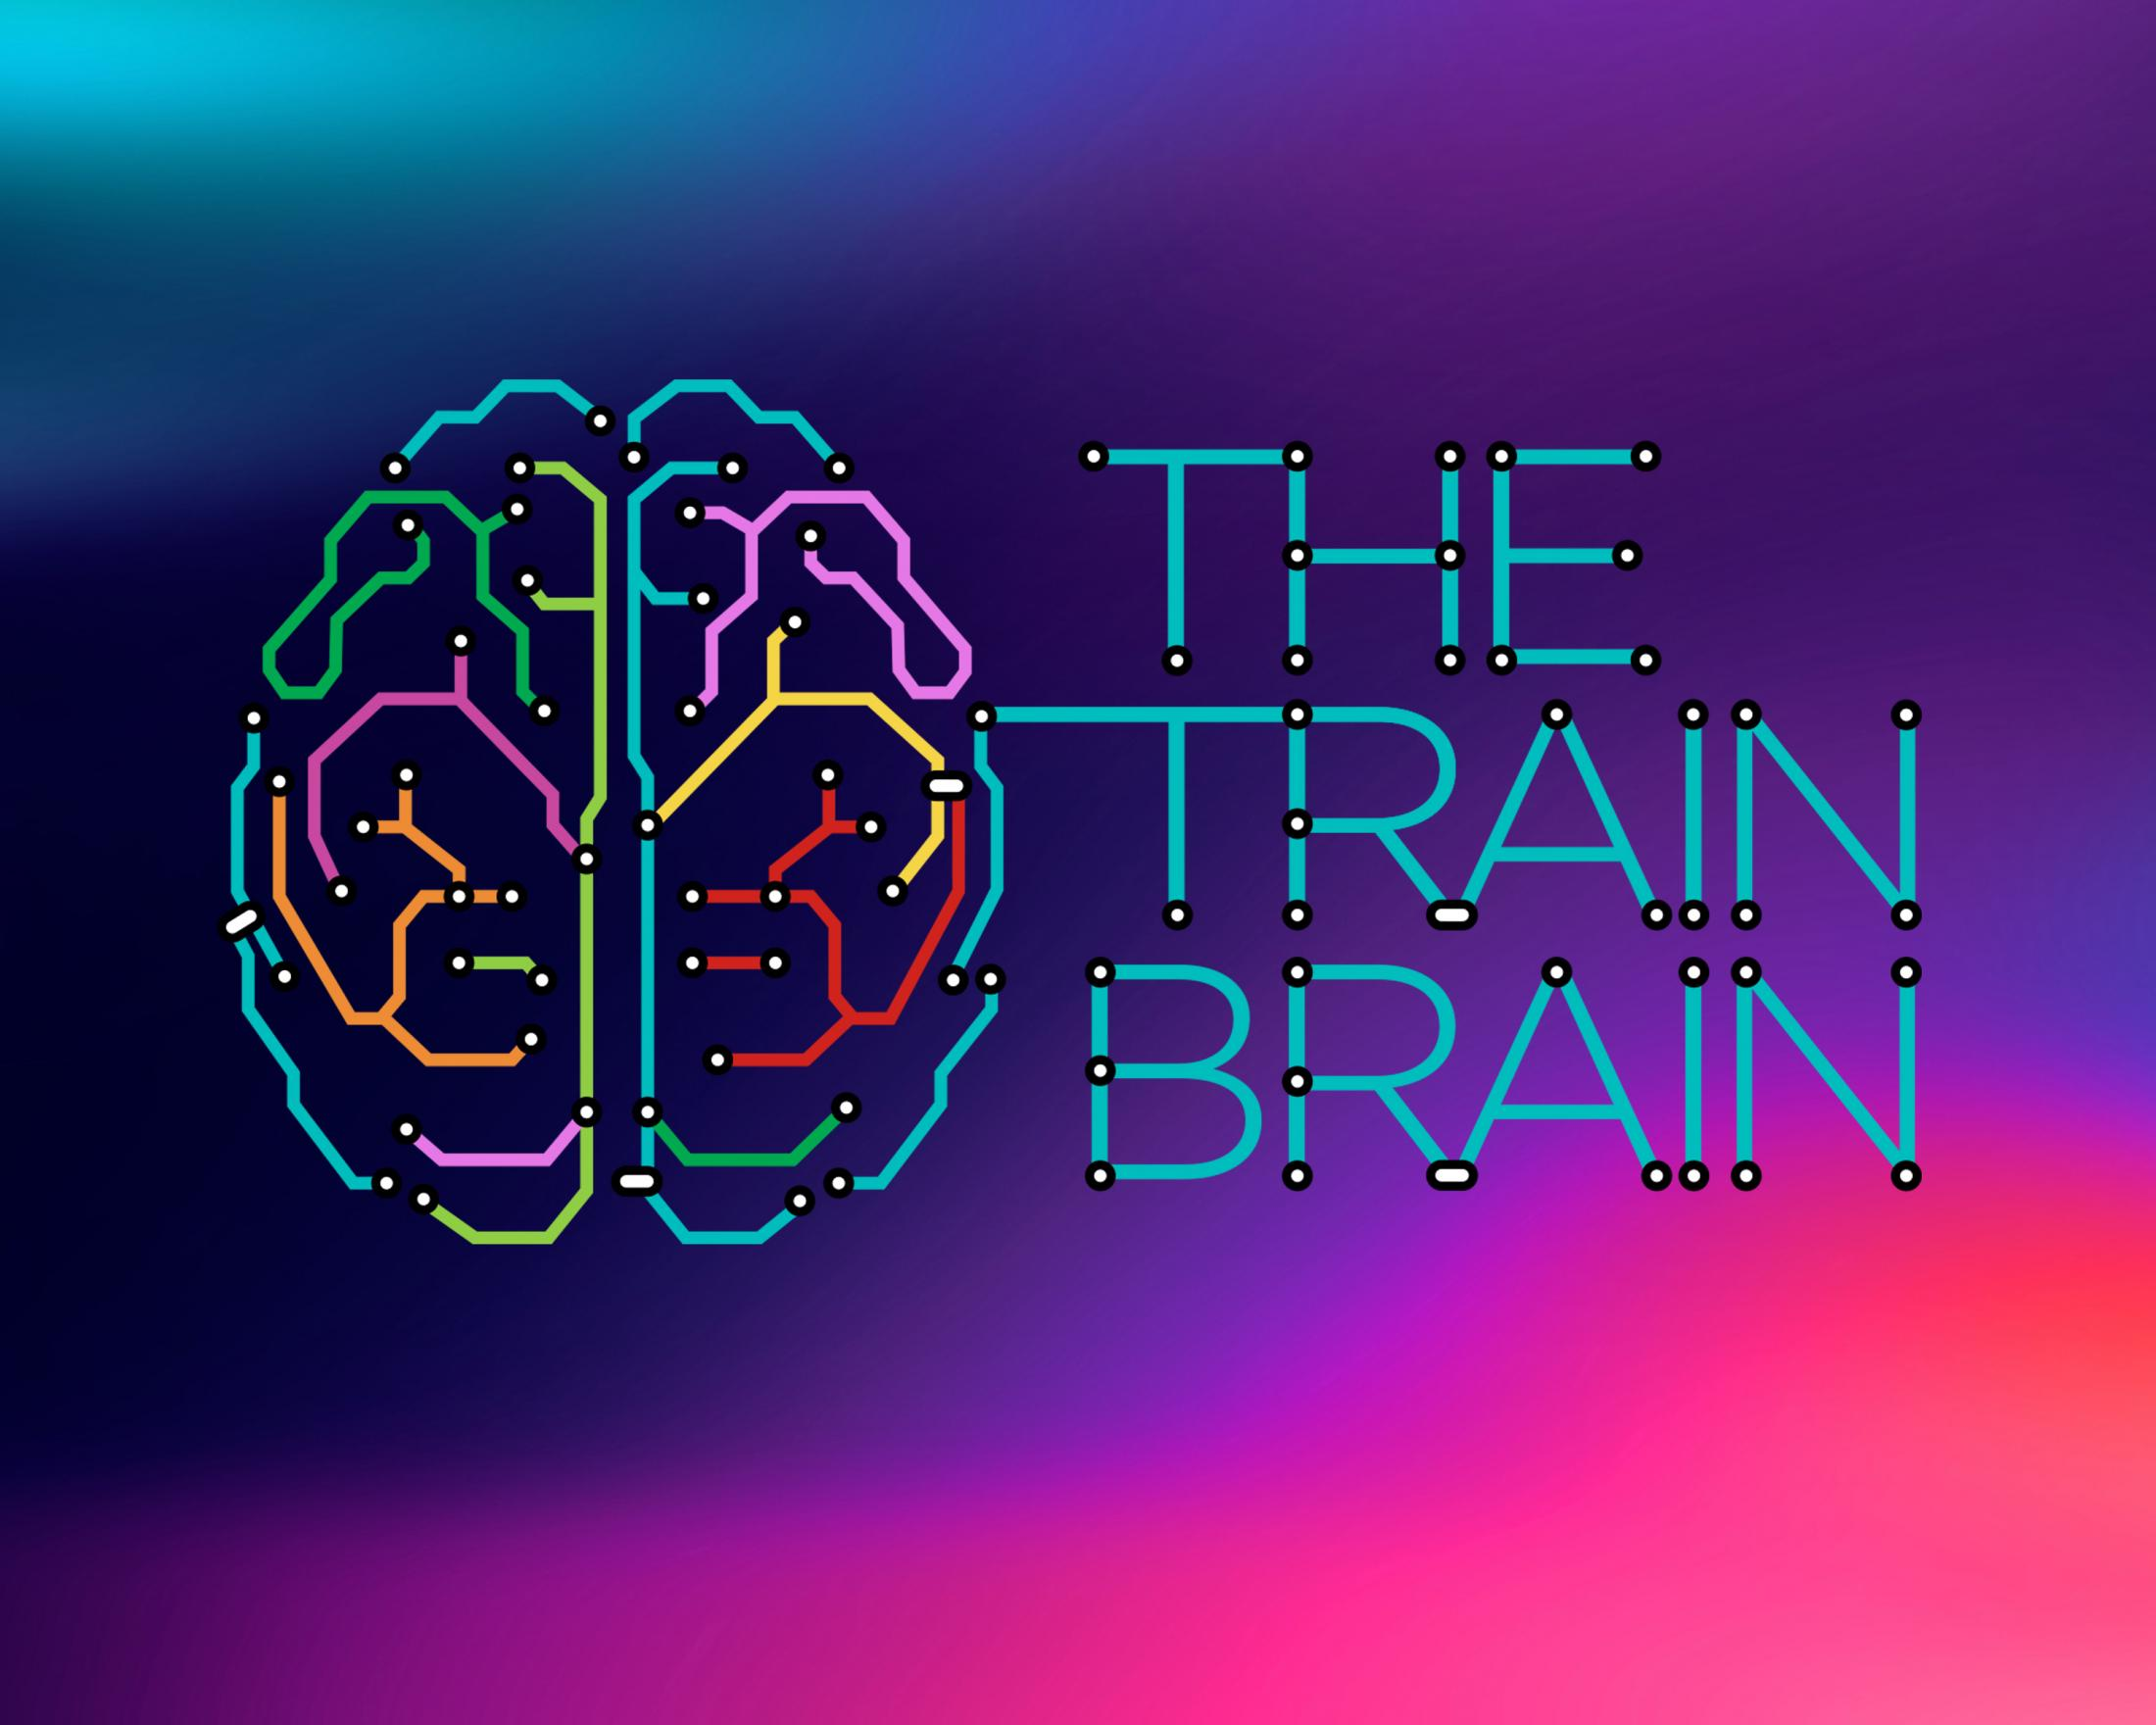 Thumbnail for The Train Brain